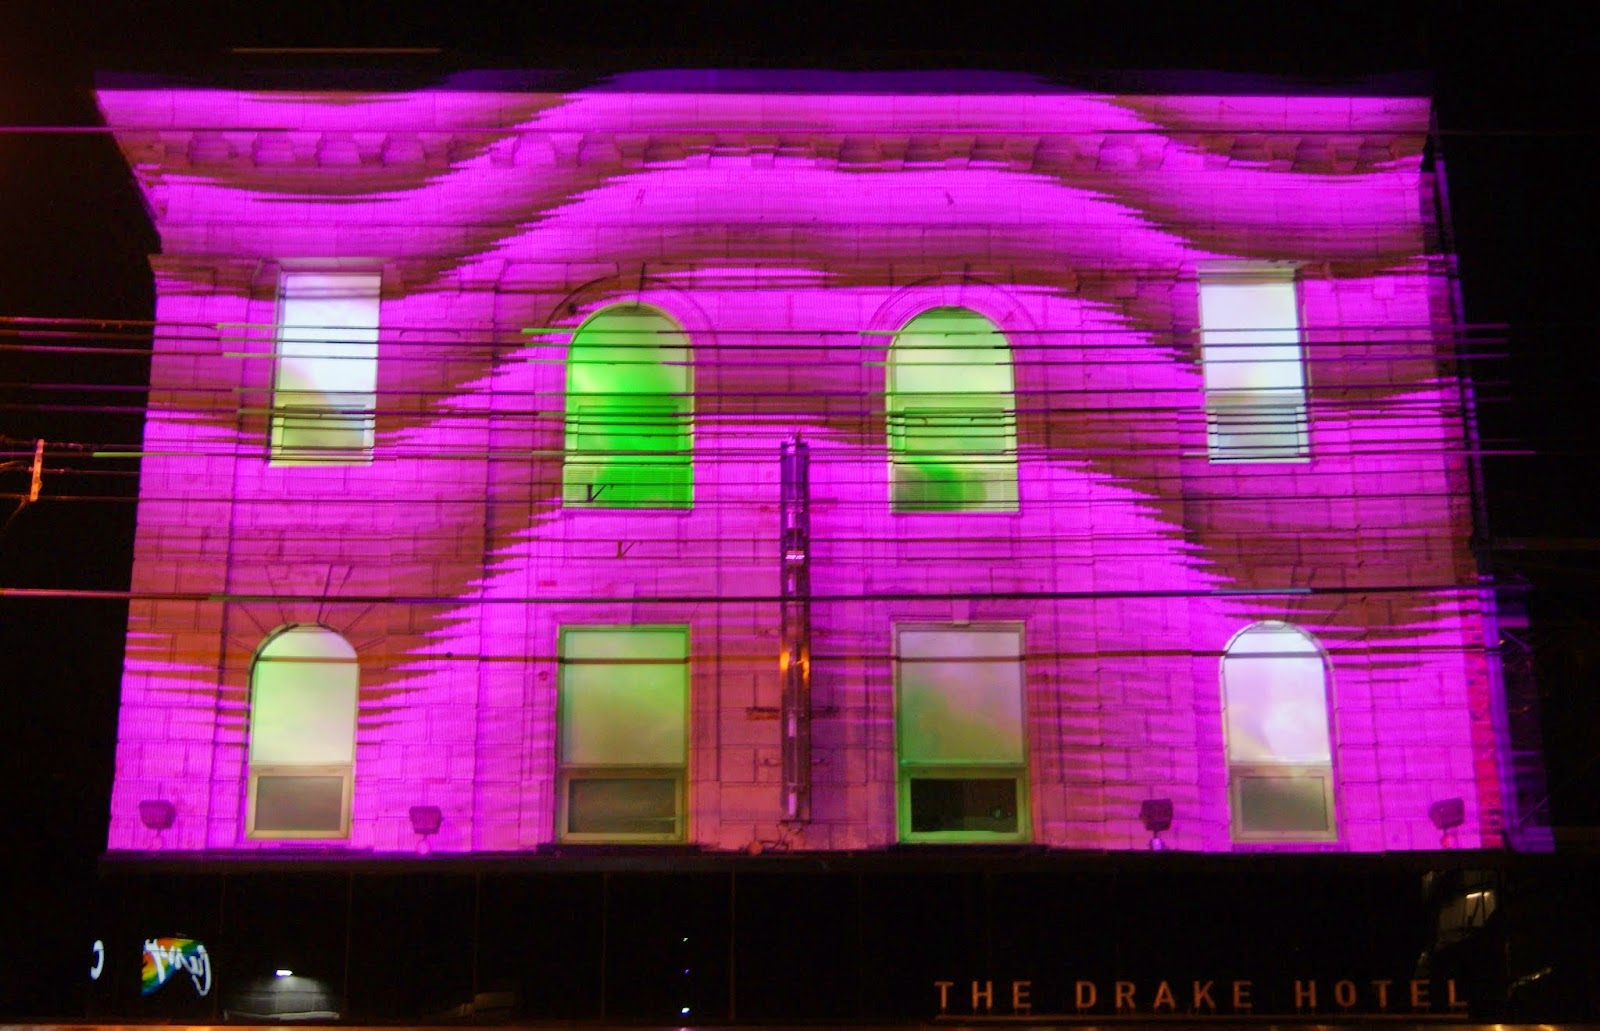 Toronto Nuit Blanche 2014: Safe Space, Drake Hotel, Culture, Art, Artmatters, Installation, Performance, The Purple Scarf, Video, Melanie.Ps, Ontario, Canada